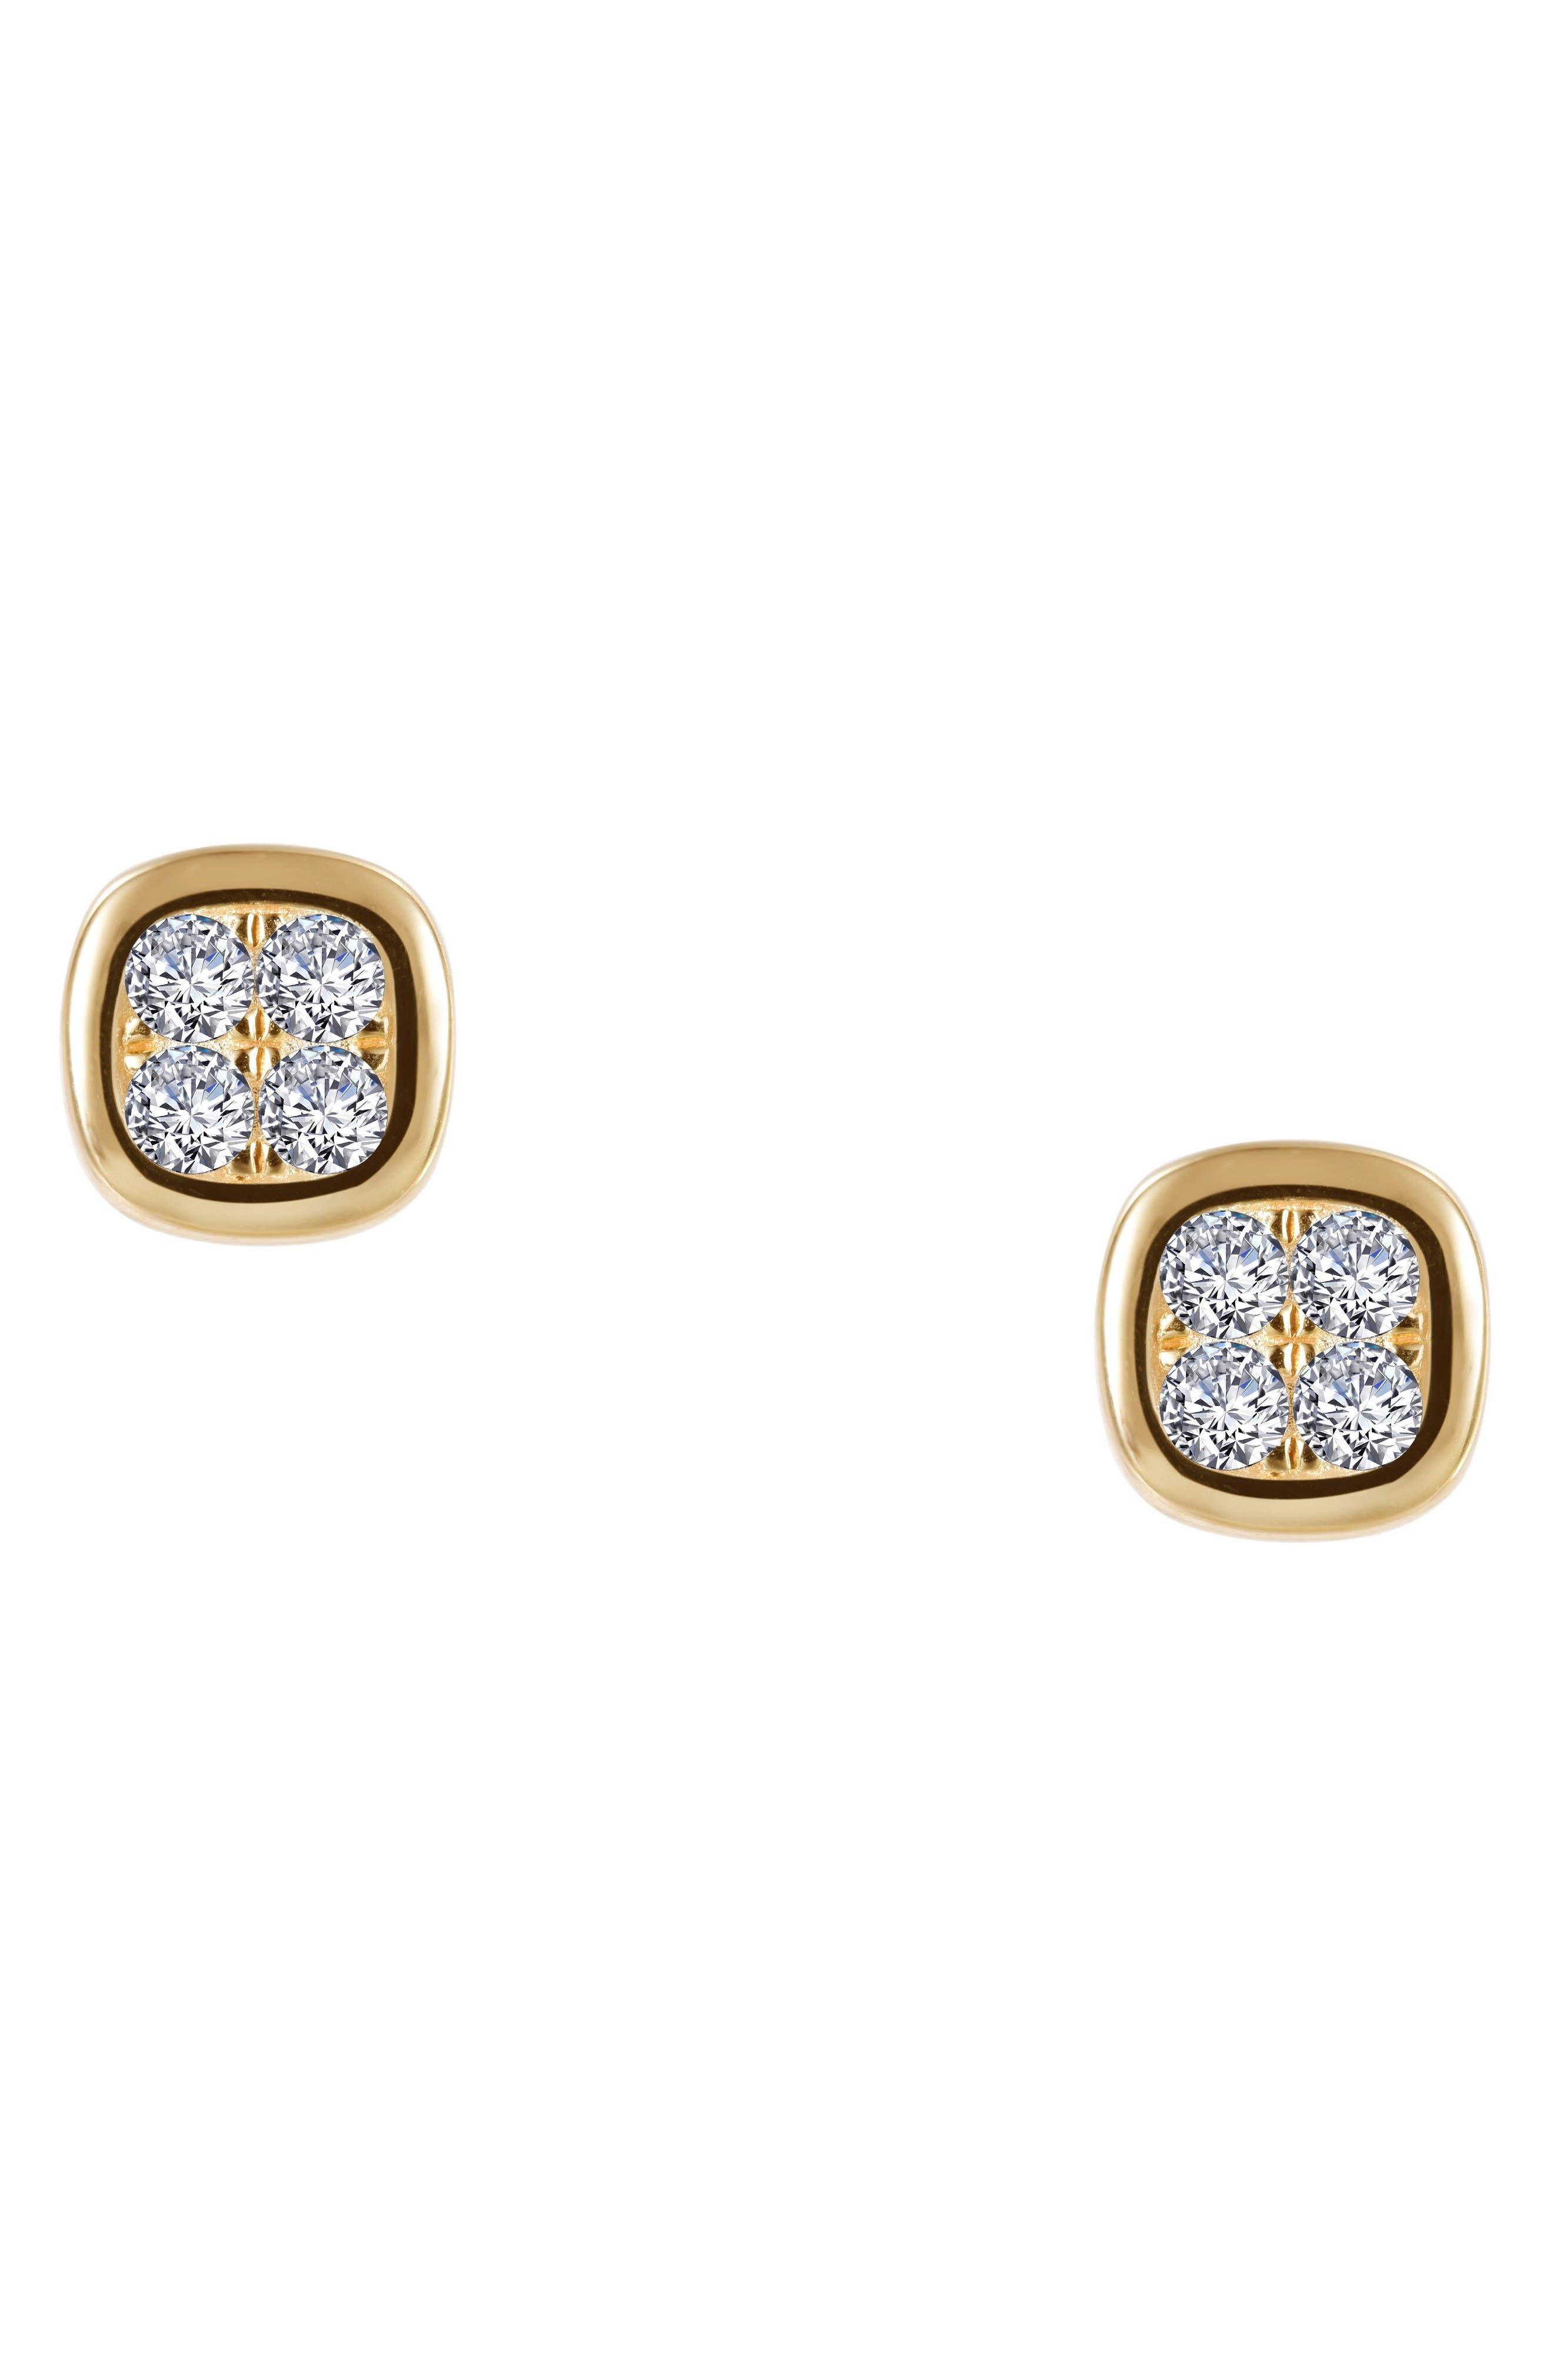 Foursquare Simulated Diamond Earrings,                             Alternate thumbnail 3, color,                             Silver/ Gold/ Clear